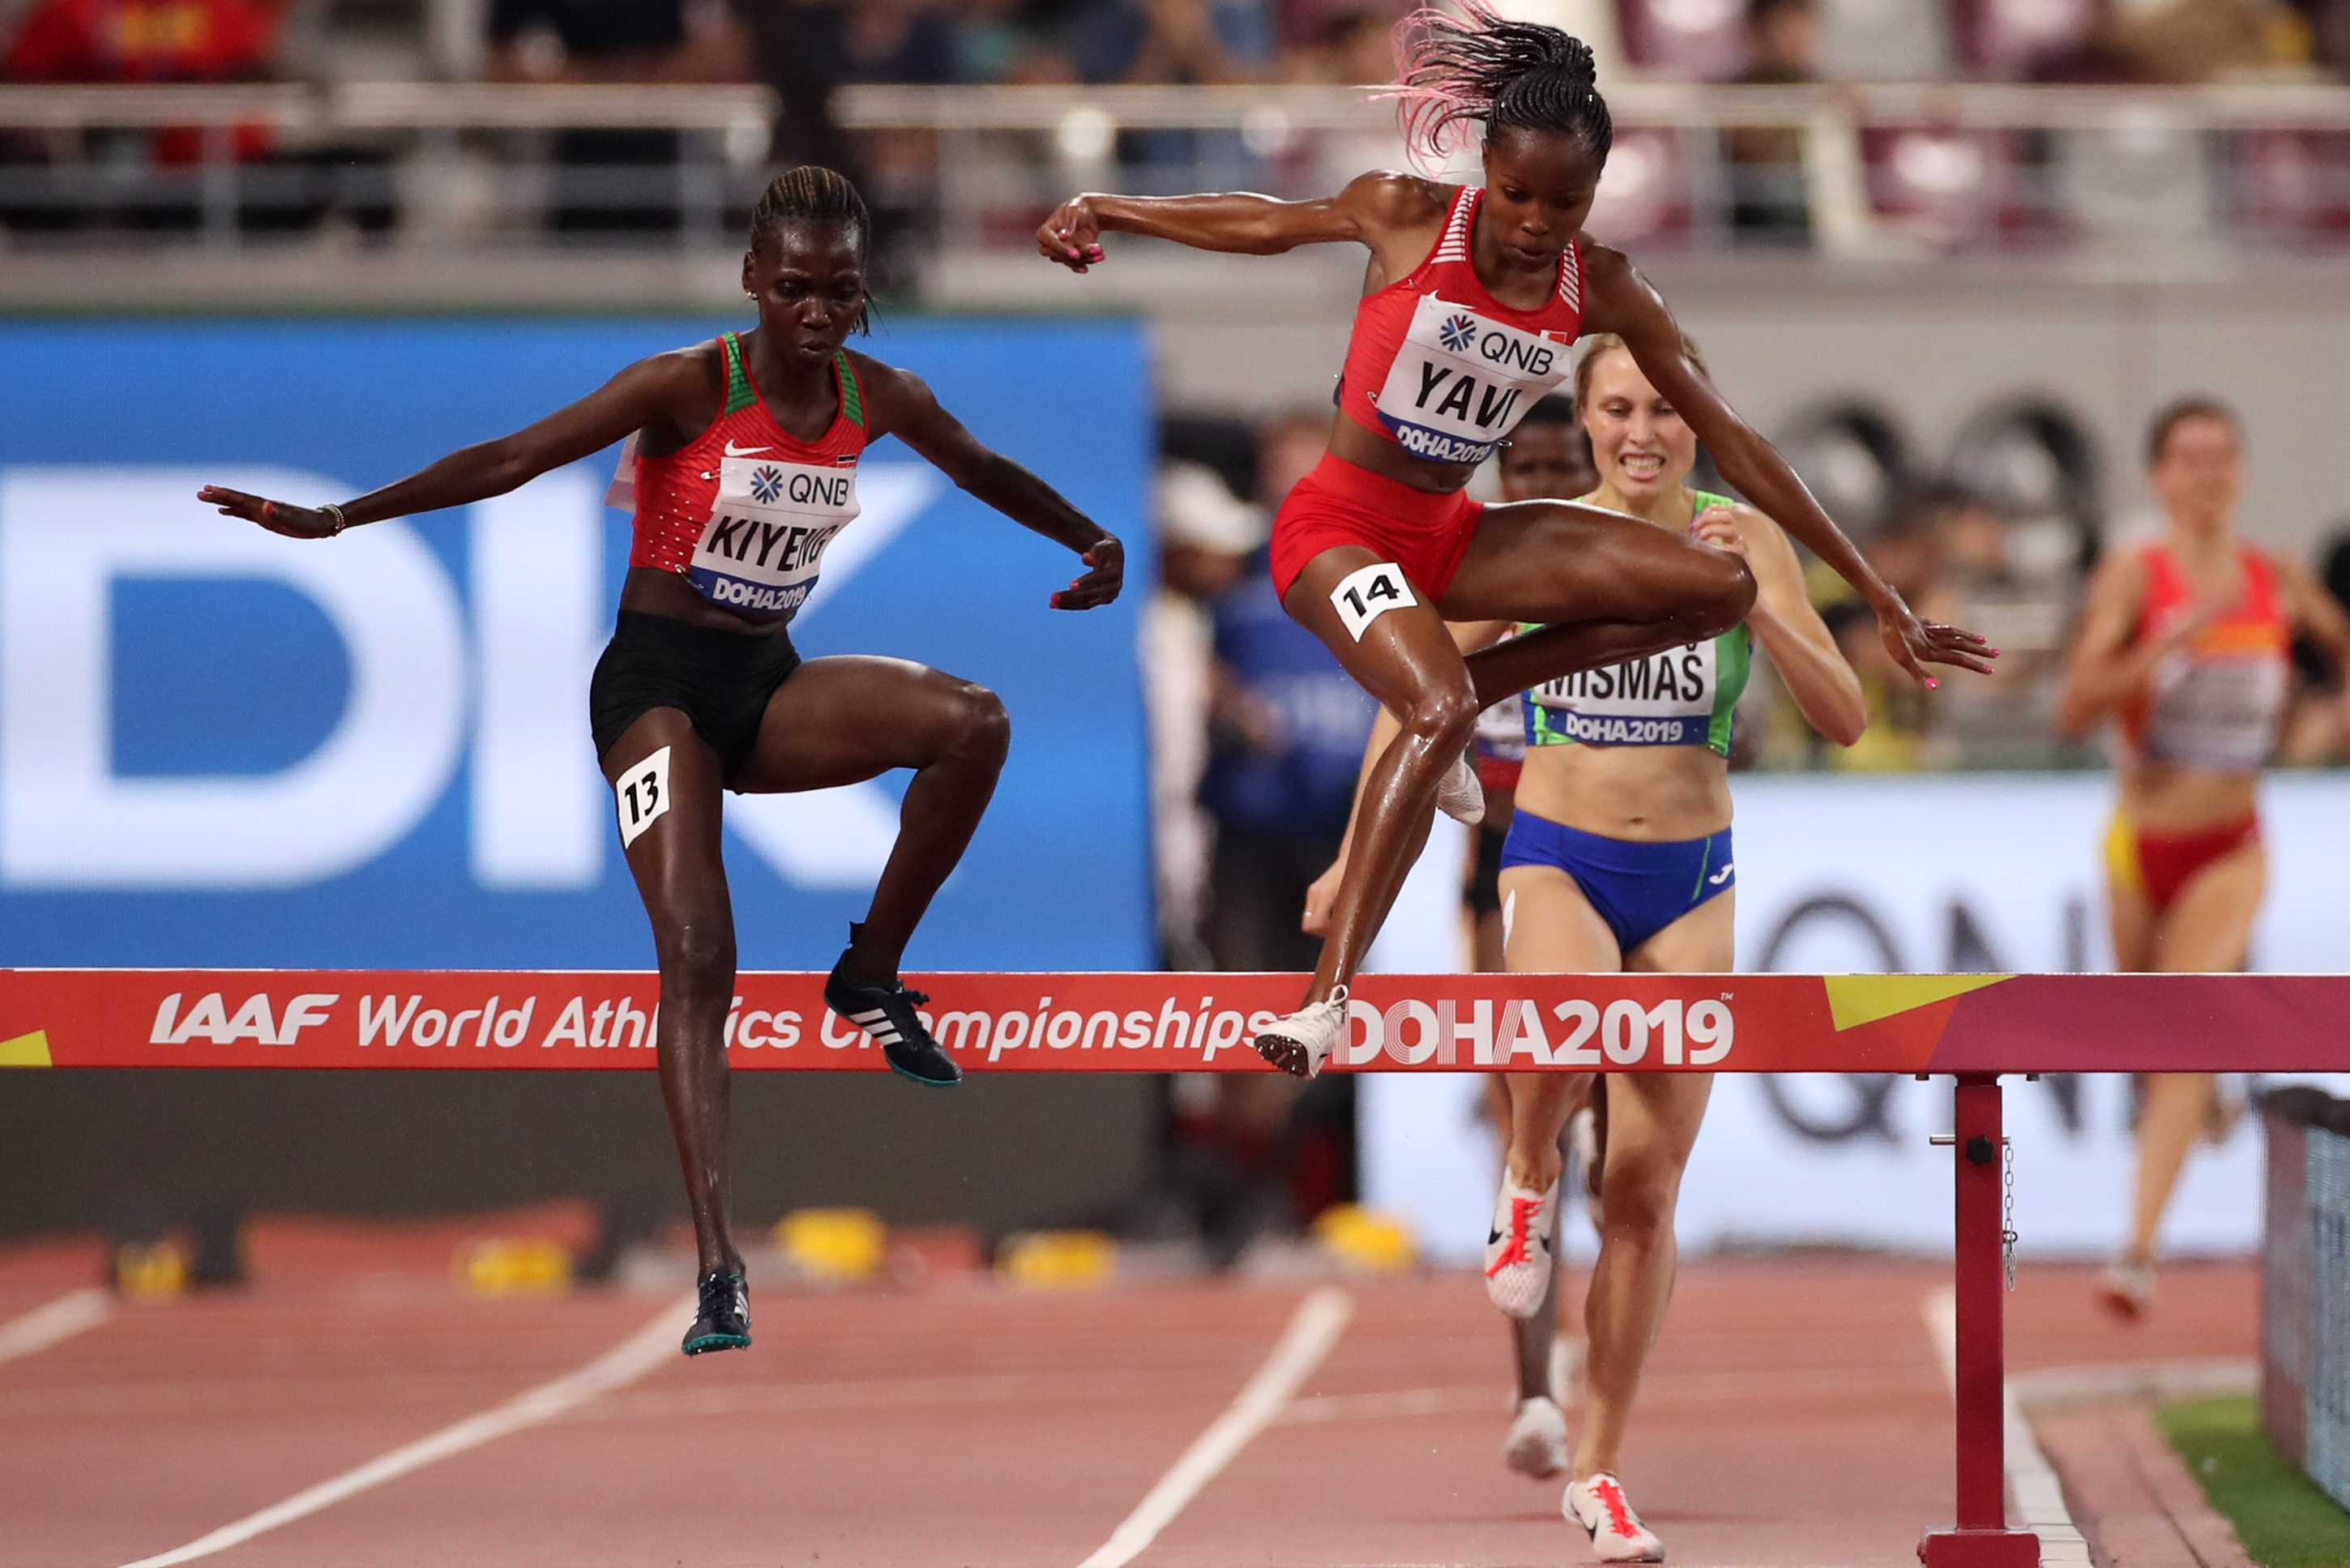 Winfred Mutile Yavi of Bahrain (C) and Hyvin Kiyeng of Kenya (L) compete in the Women's 3000 meter Steeplechase heats on Sept. 27, the first day of 17th IAAF World Athletics Championships in Doha, Qatar. (Christian Petersen/Getty Images)